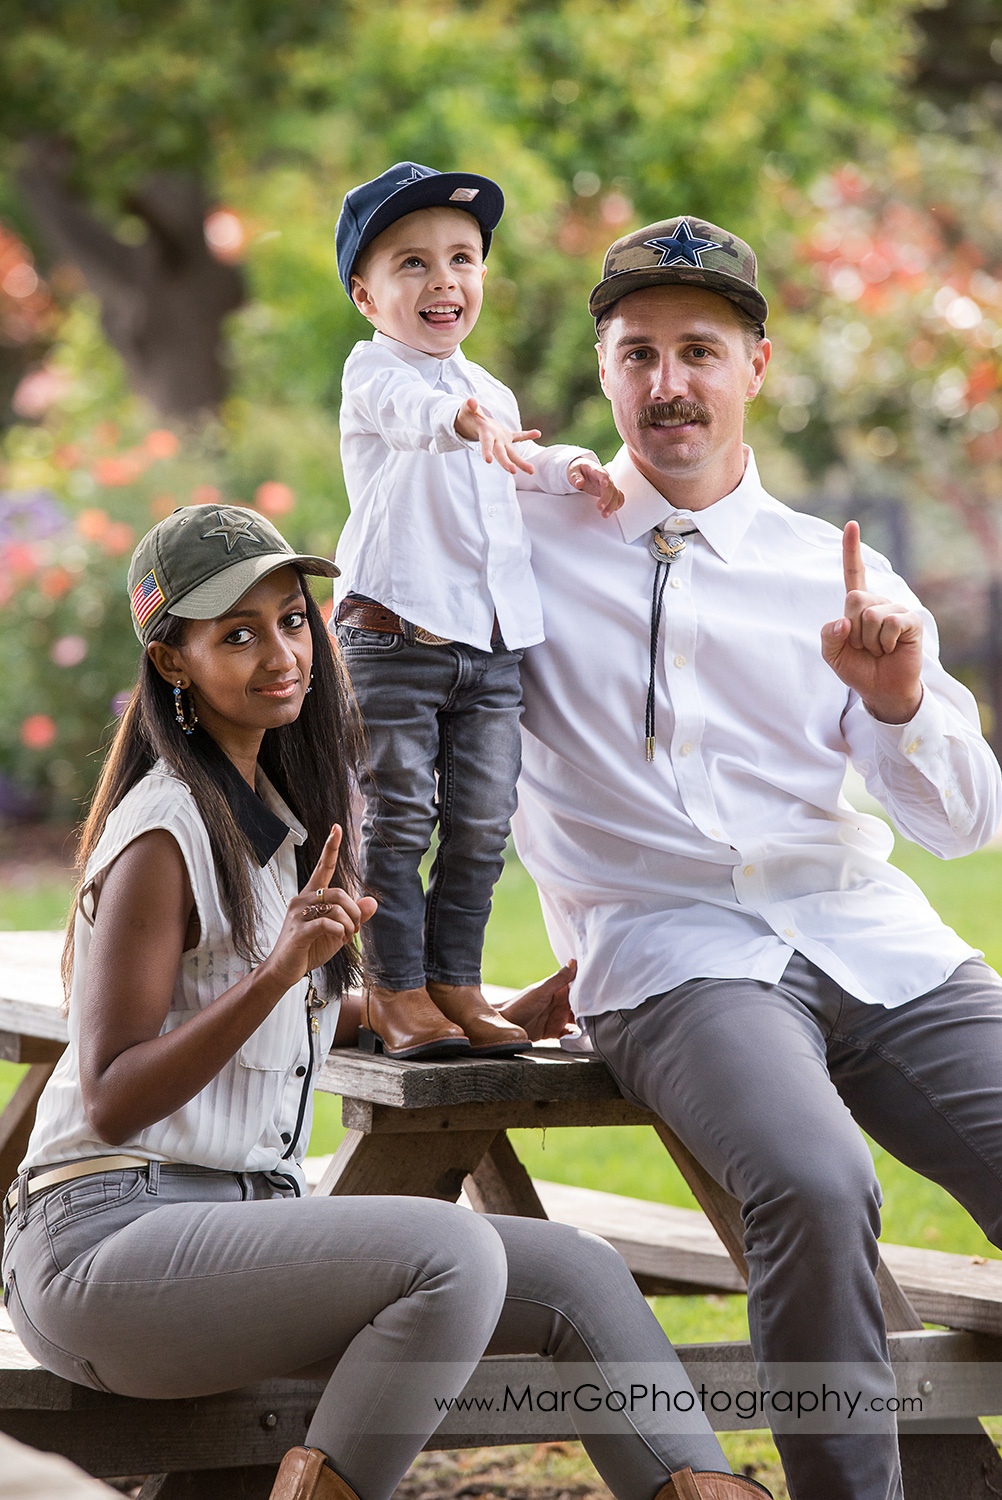 portrait of family of 3 in white shirt and gray jeans sitting on the bench in Shinn Historical Park and Arboretum in Fremont